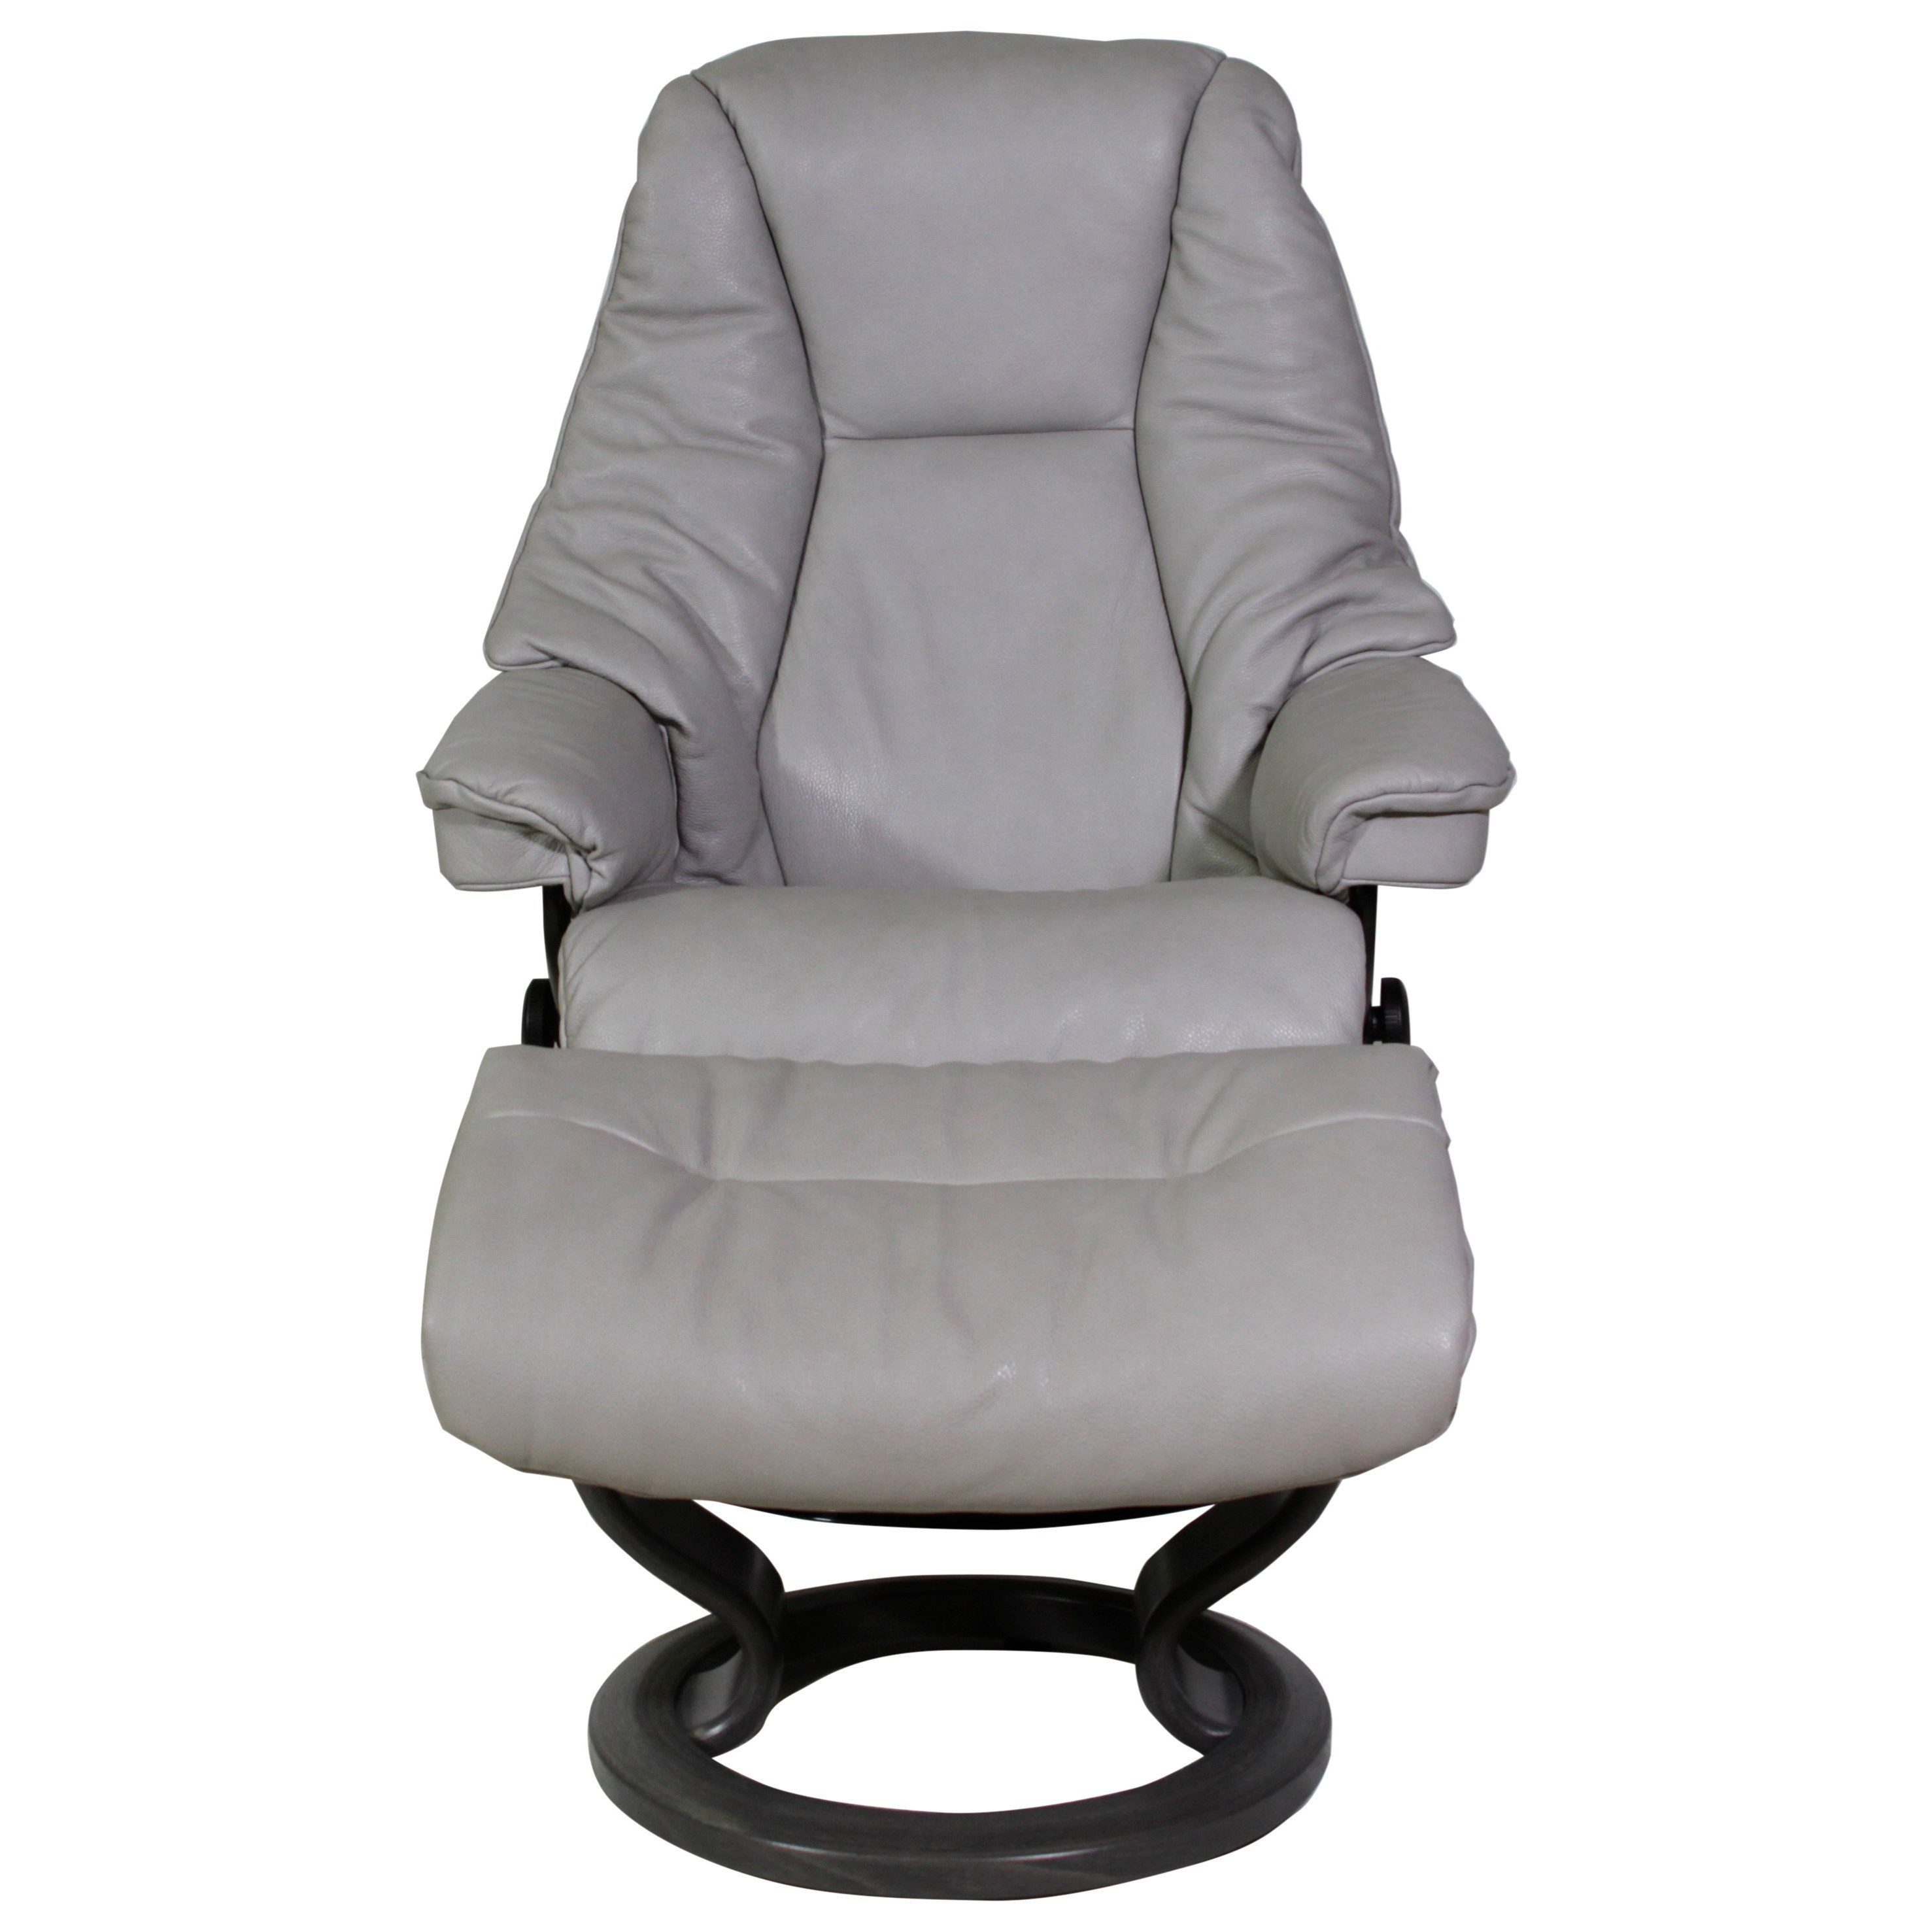 Small Chair With Ottoman: Stressless Live Small Reclining Chair & Ottoman With